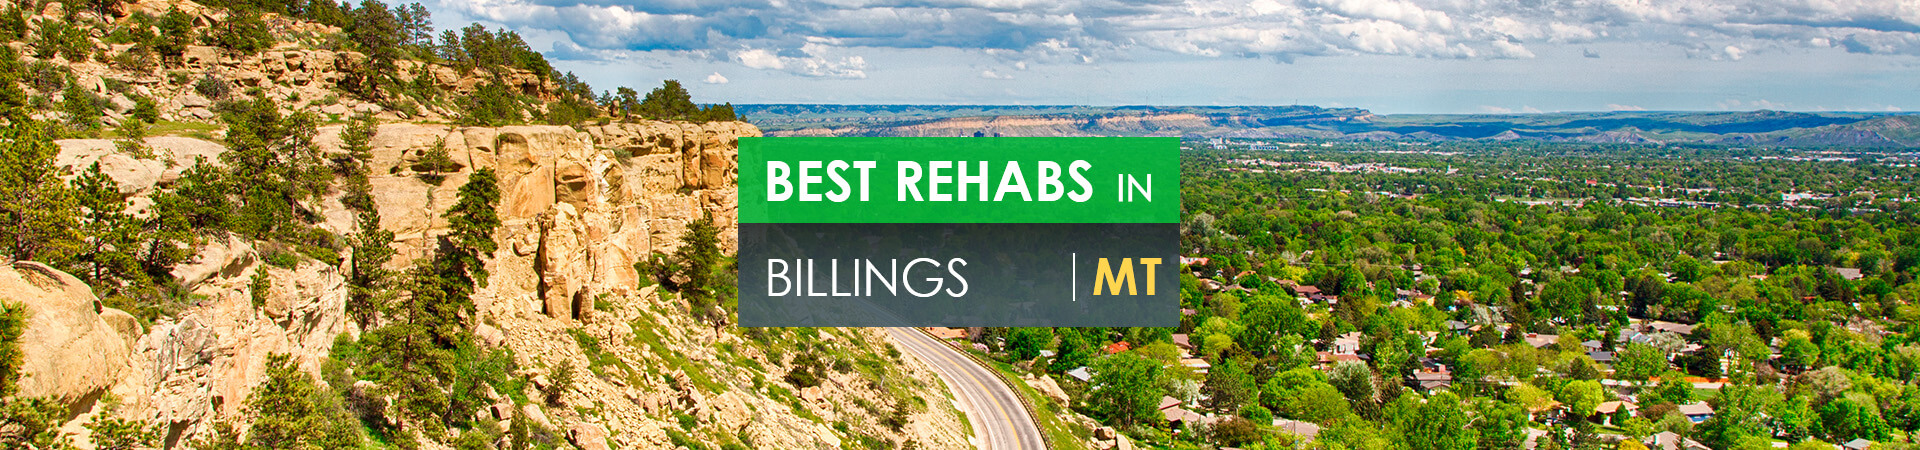 Best rehabs in Billings, MT